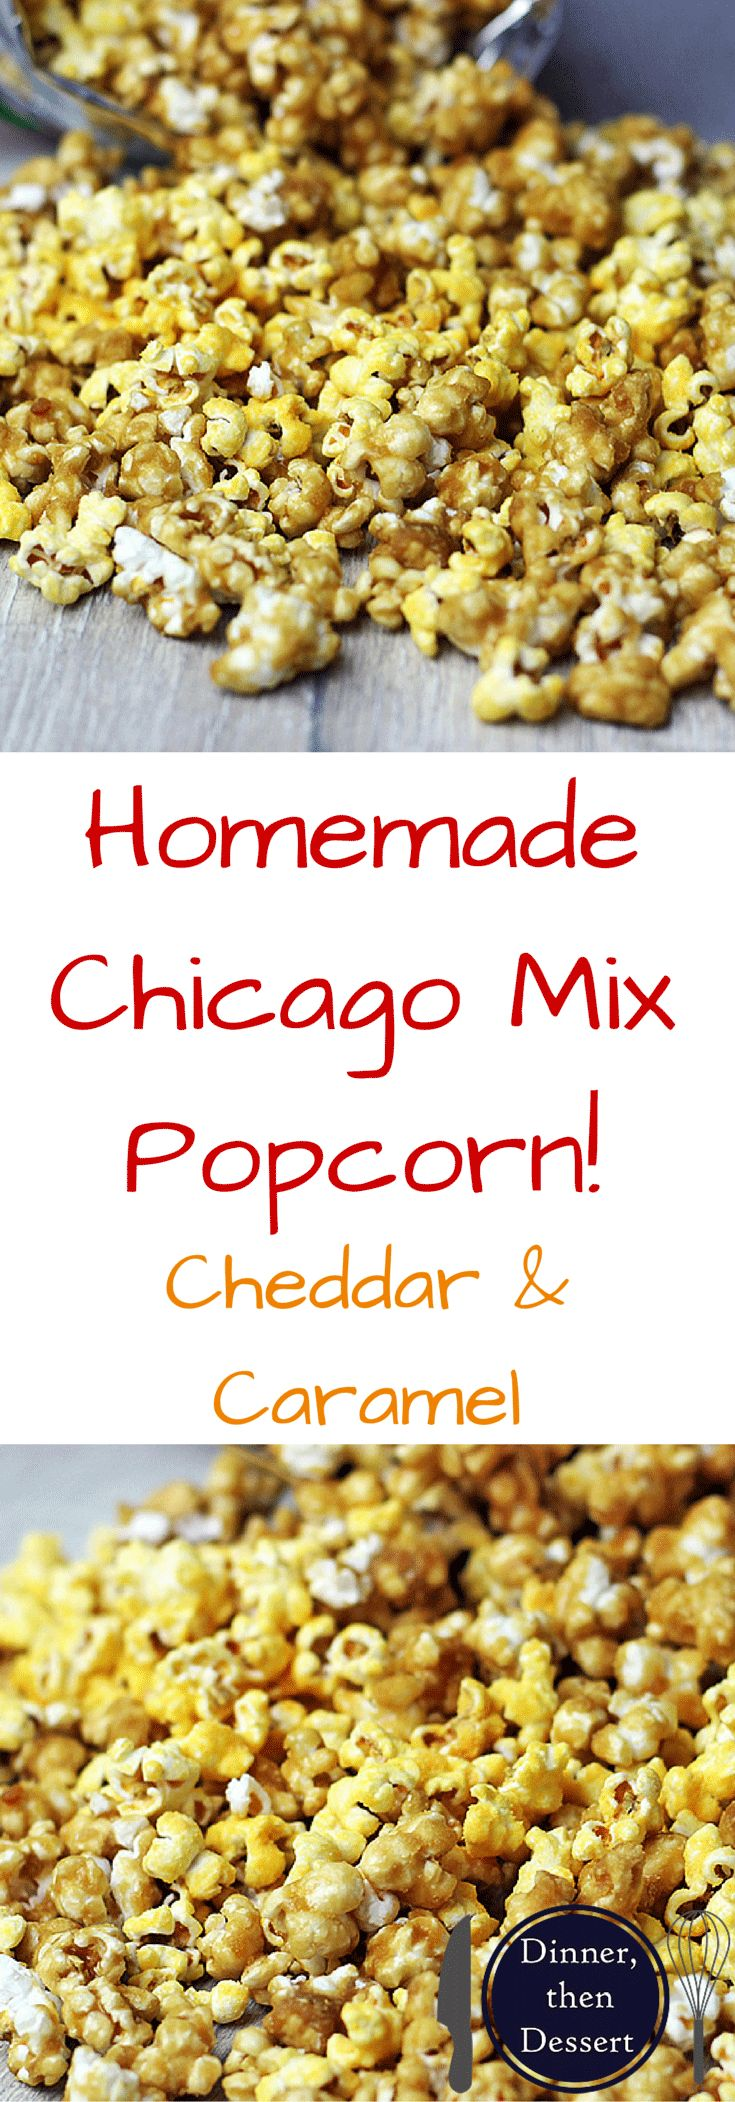 Salty & Sweet. Cheesy & Buttery! This mix of popcorns is a fantastic mix of flavors commonly referred to as Chicago Popcorn! You've seen it in popcorn stores and in pre-made bags, but now you can make it at home!